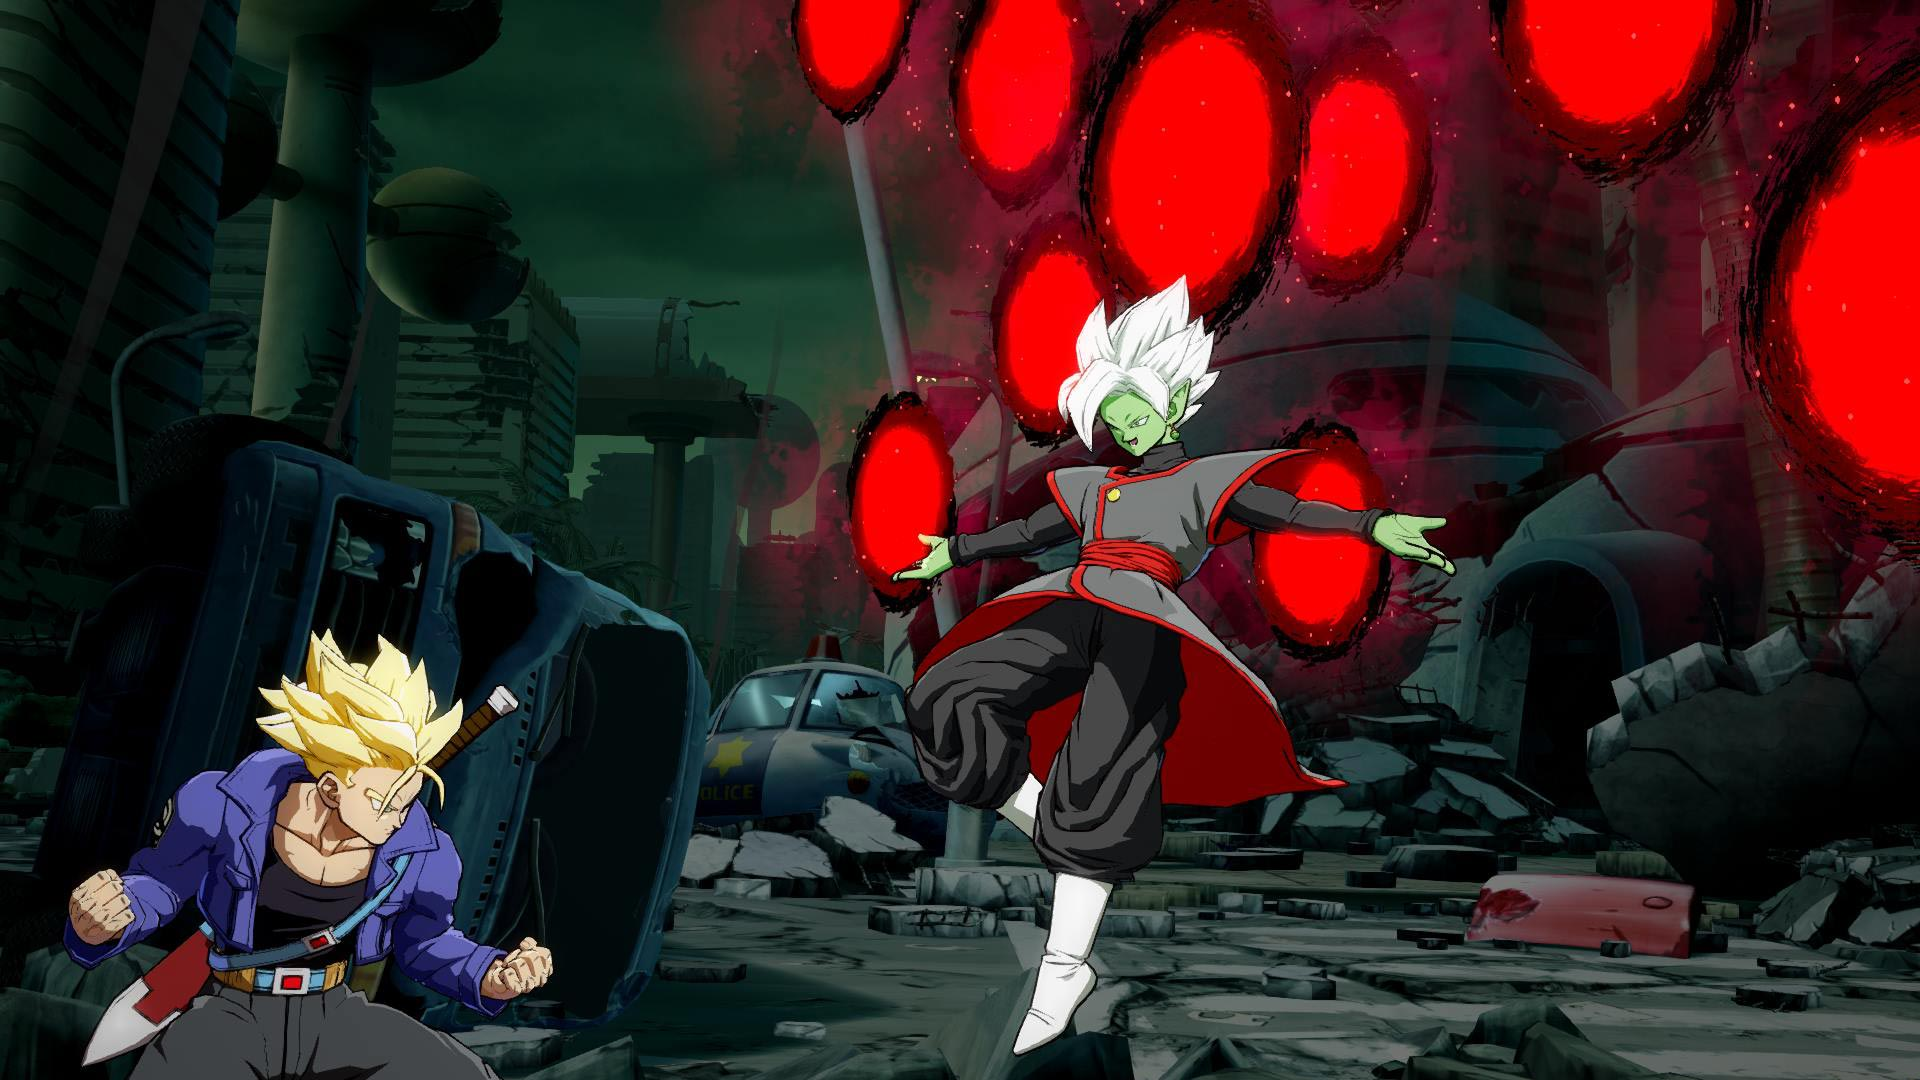 Anime Dragon Wallpaper Hd Fused Zamasu Is Dragon Ball Fighterz S Next Dlc Character